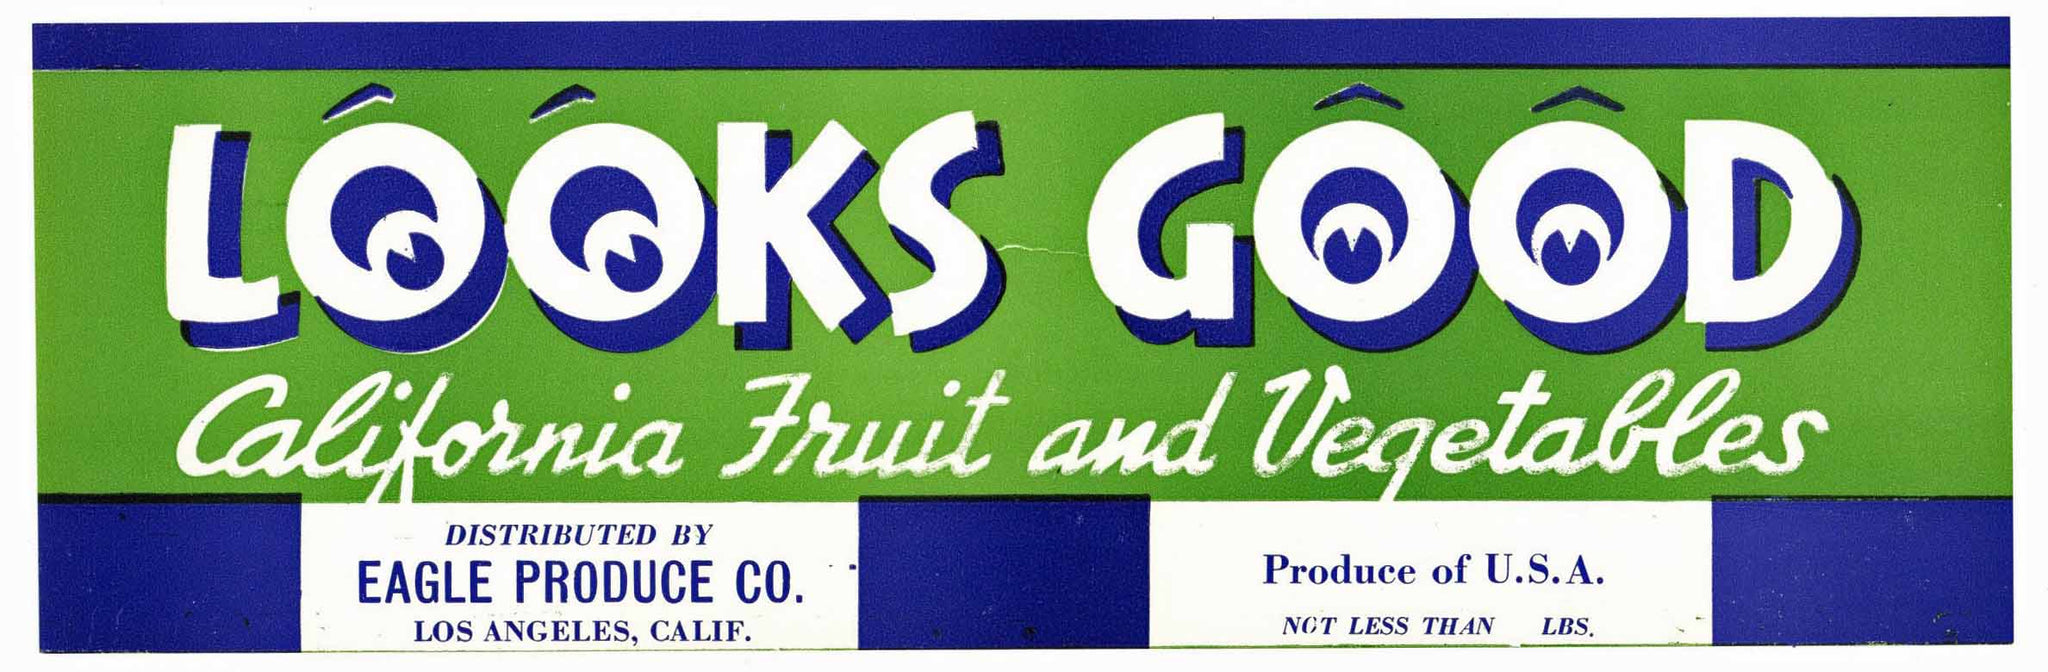 Looks Good Brand Vintage Produce Crate Label